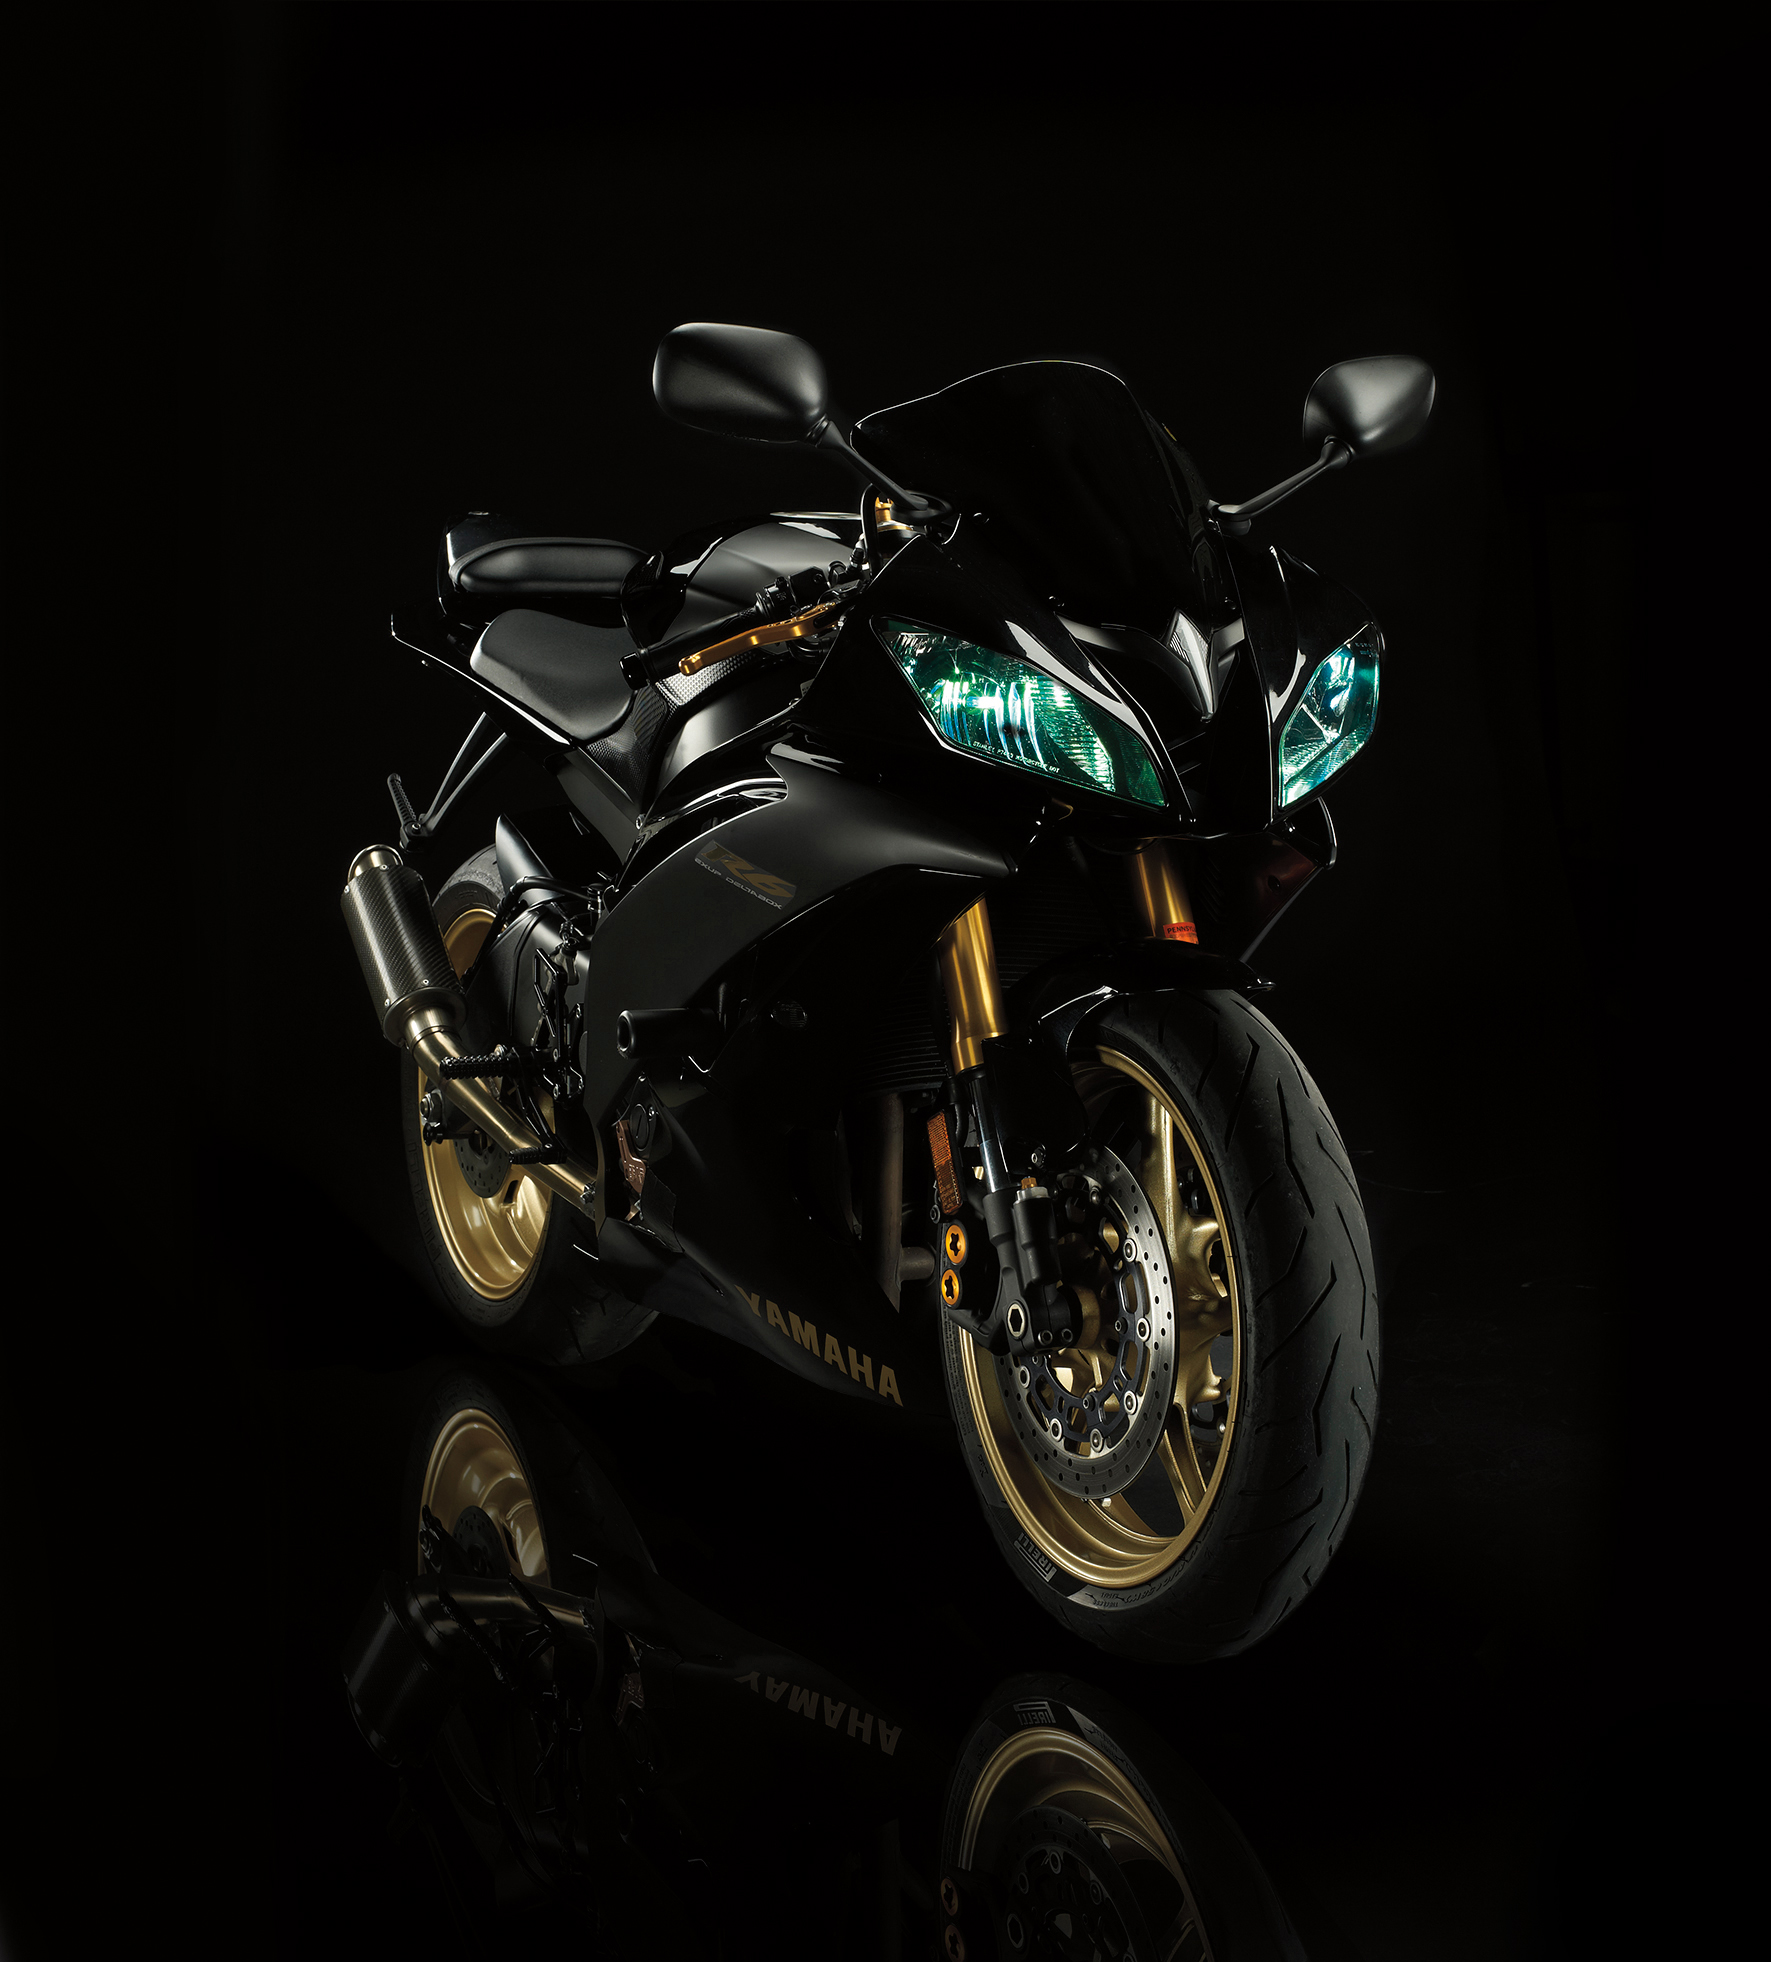 Photography - Motorcycle In Dark Room